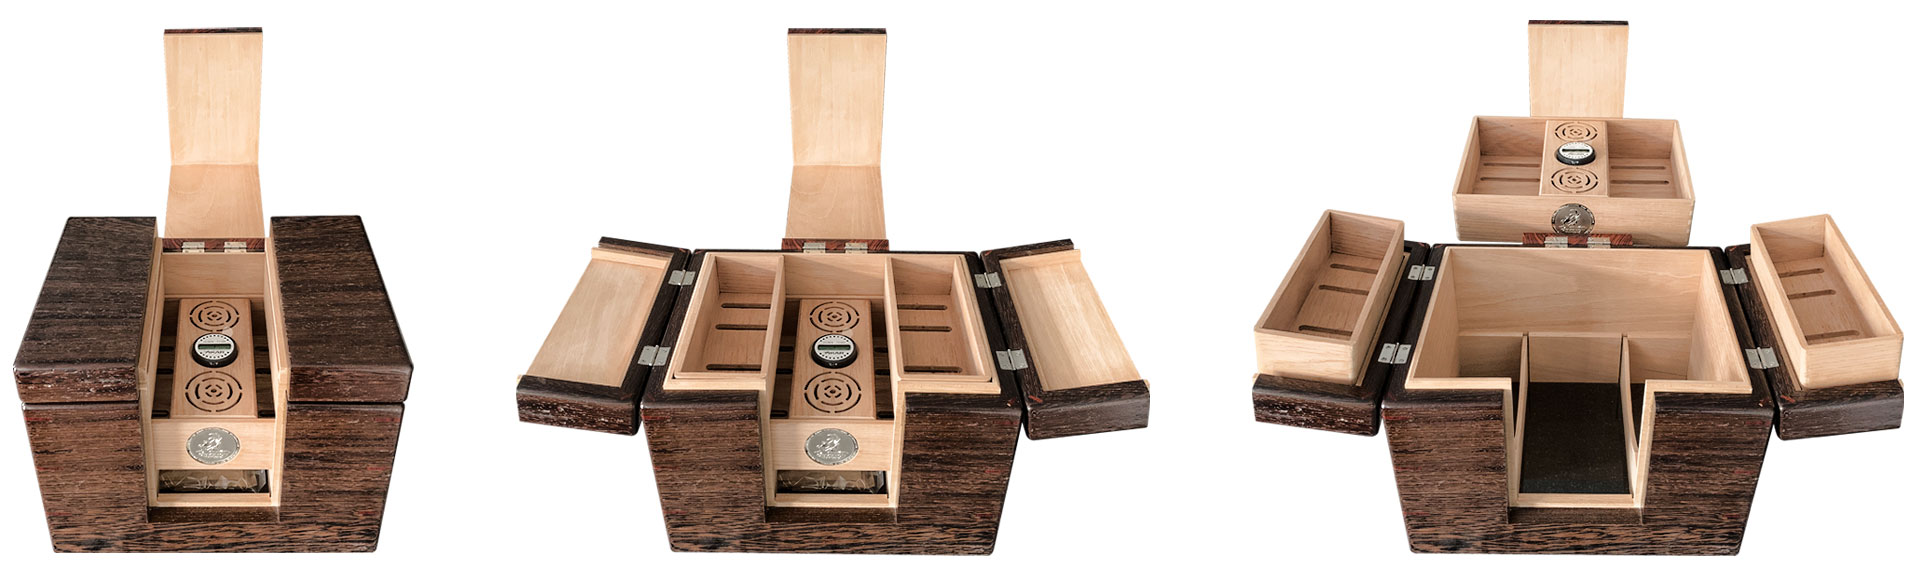 The Lancelot cigar humidor opening